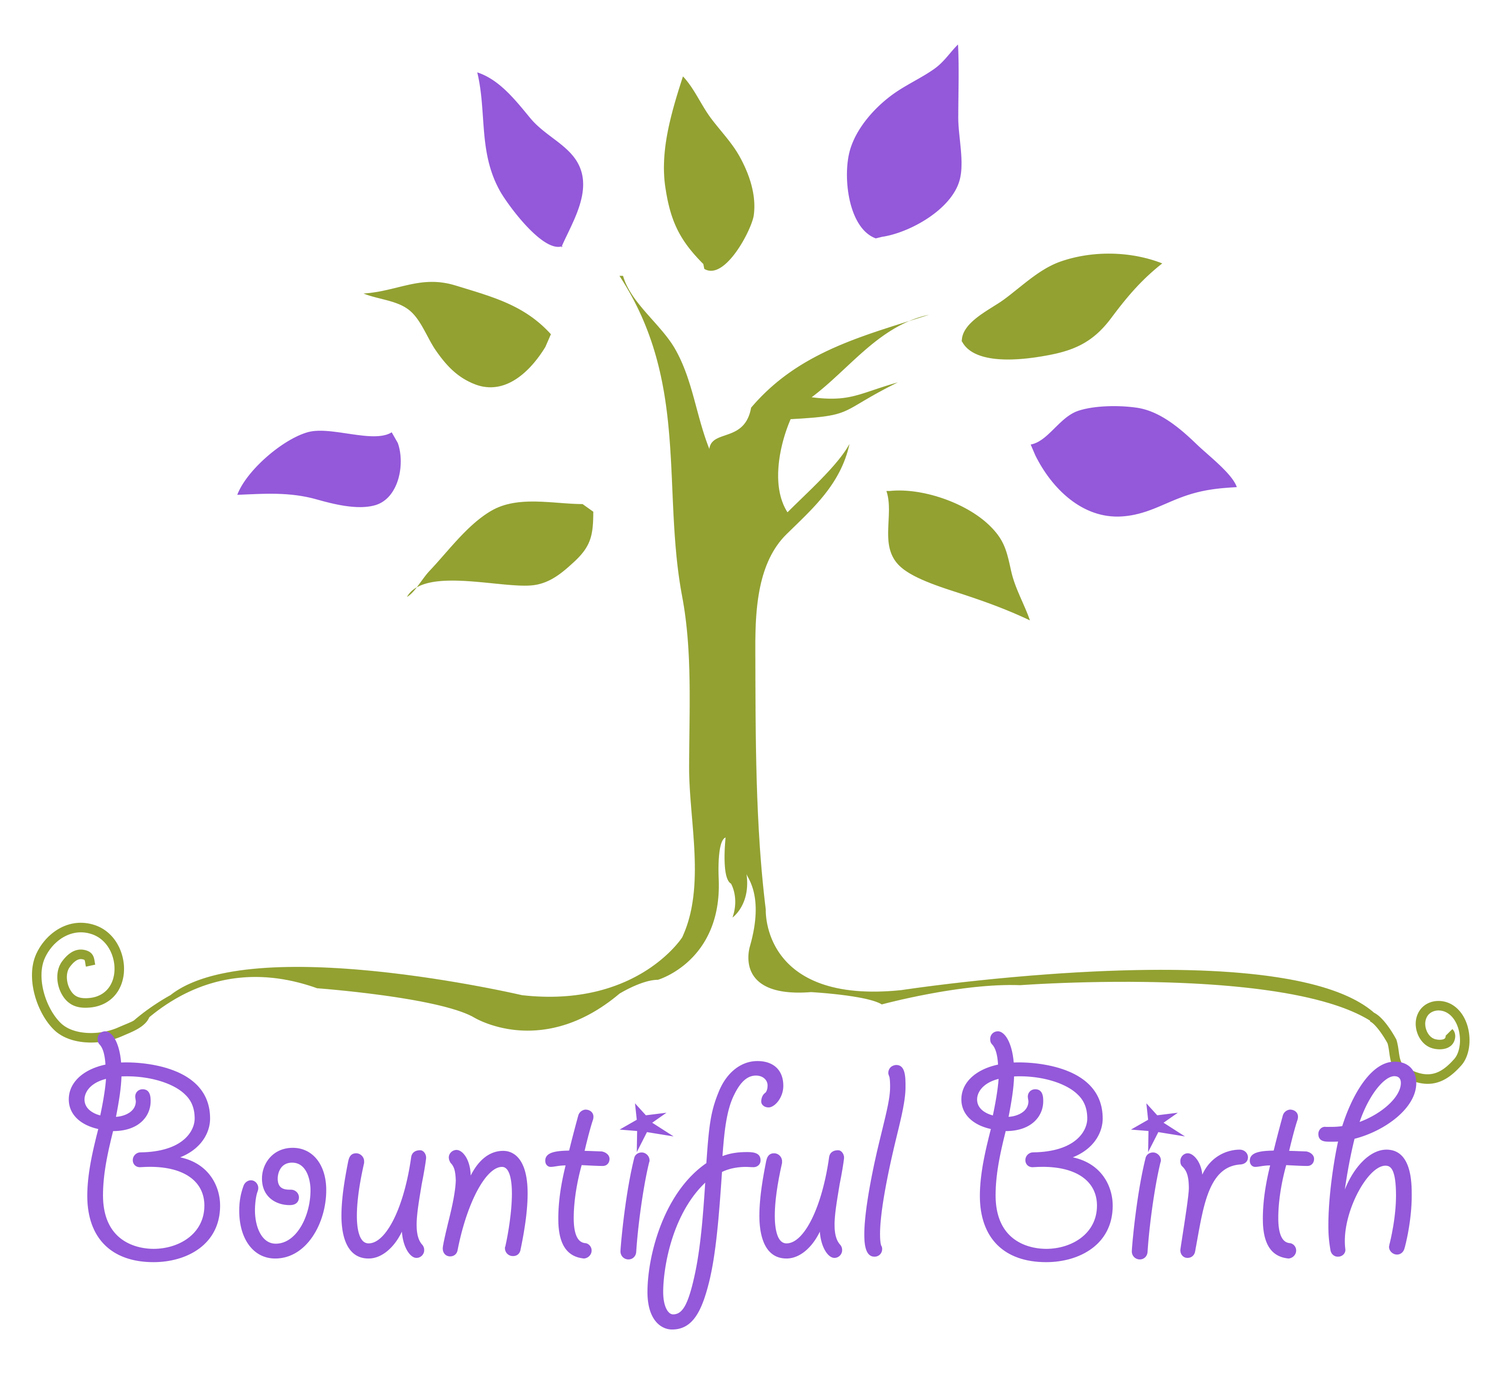 Bountiful Birth